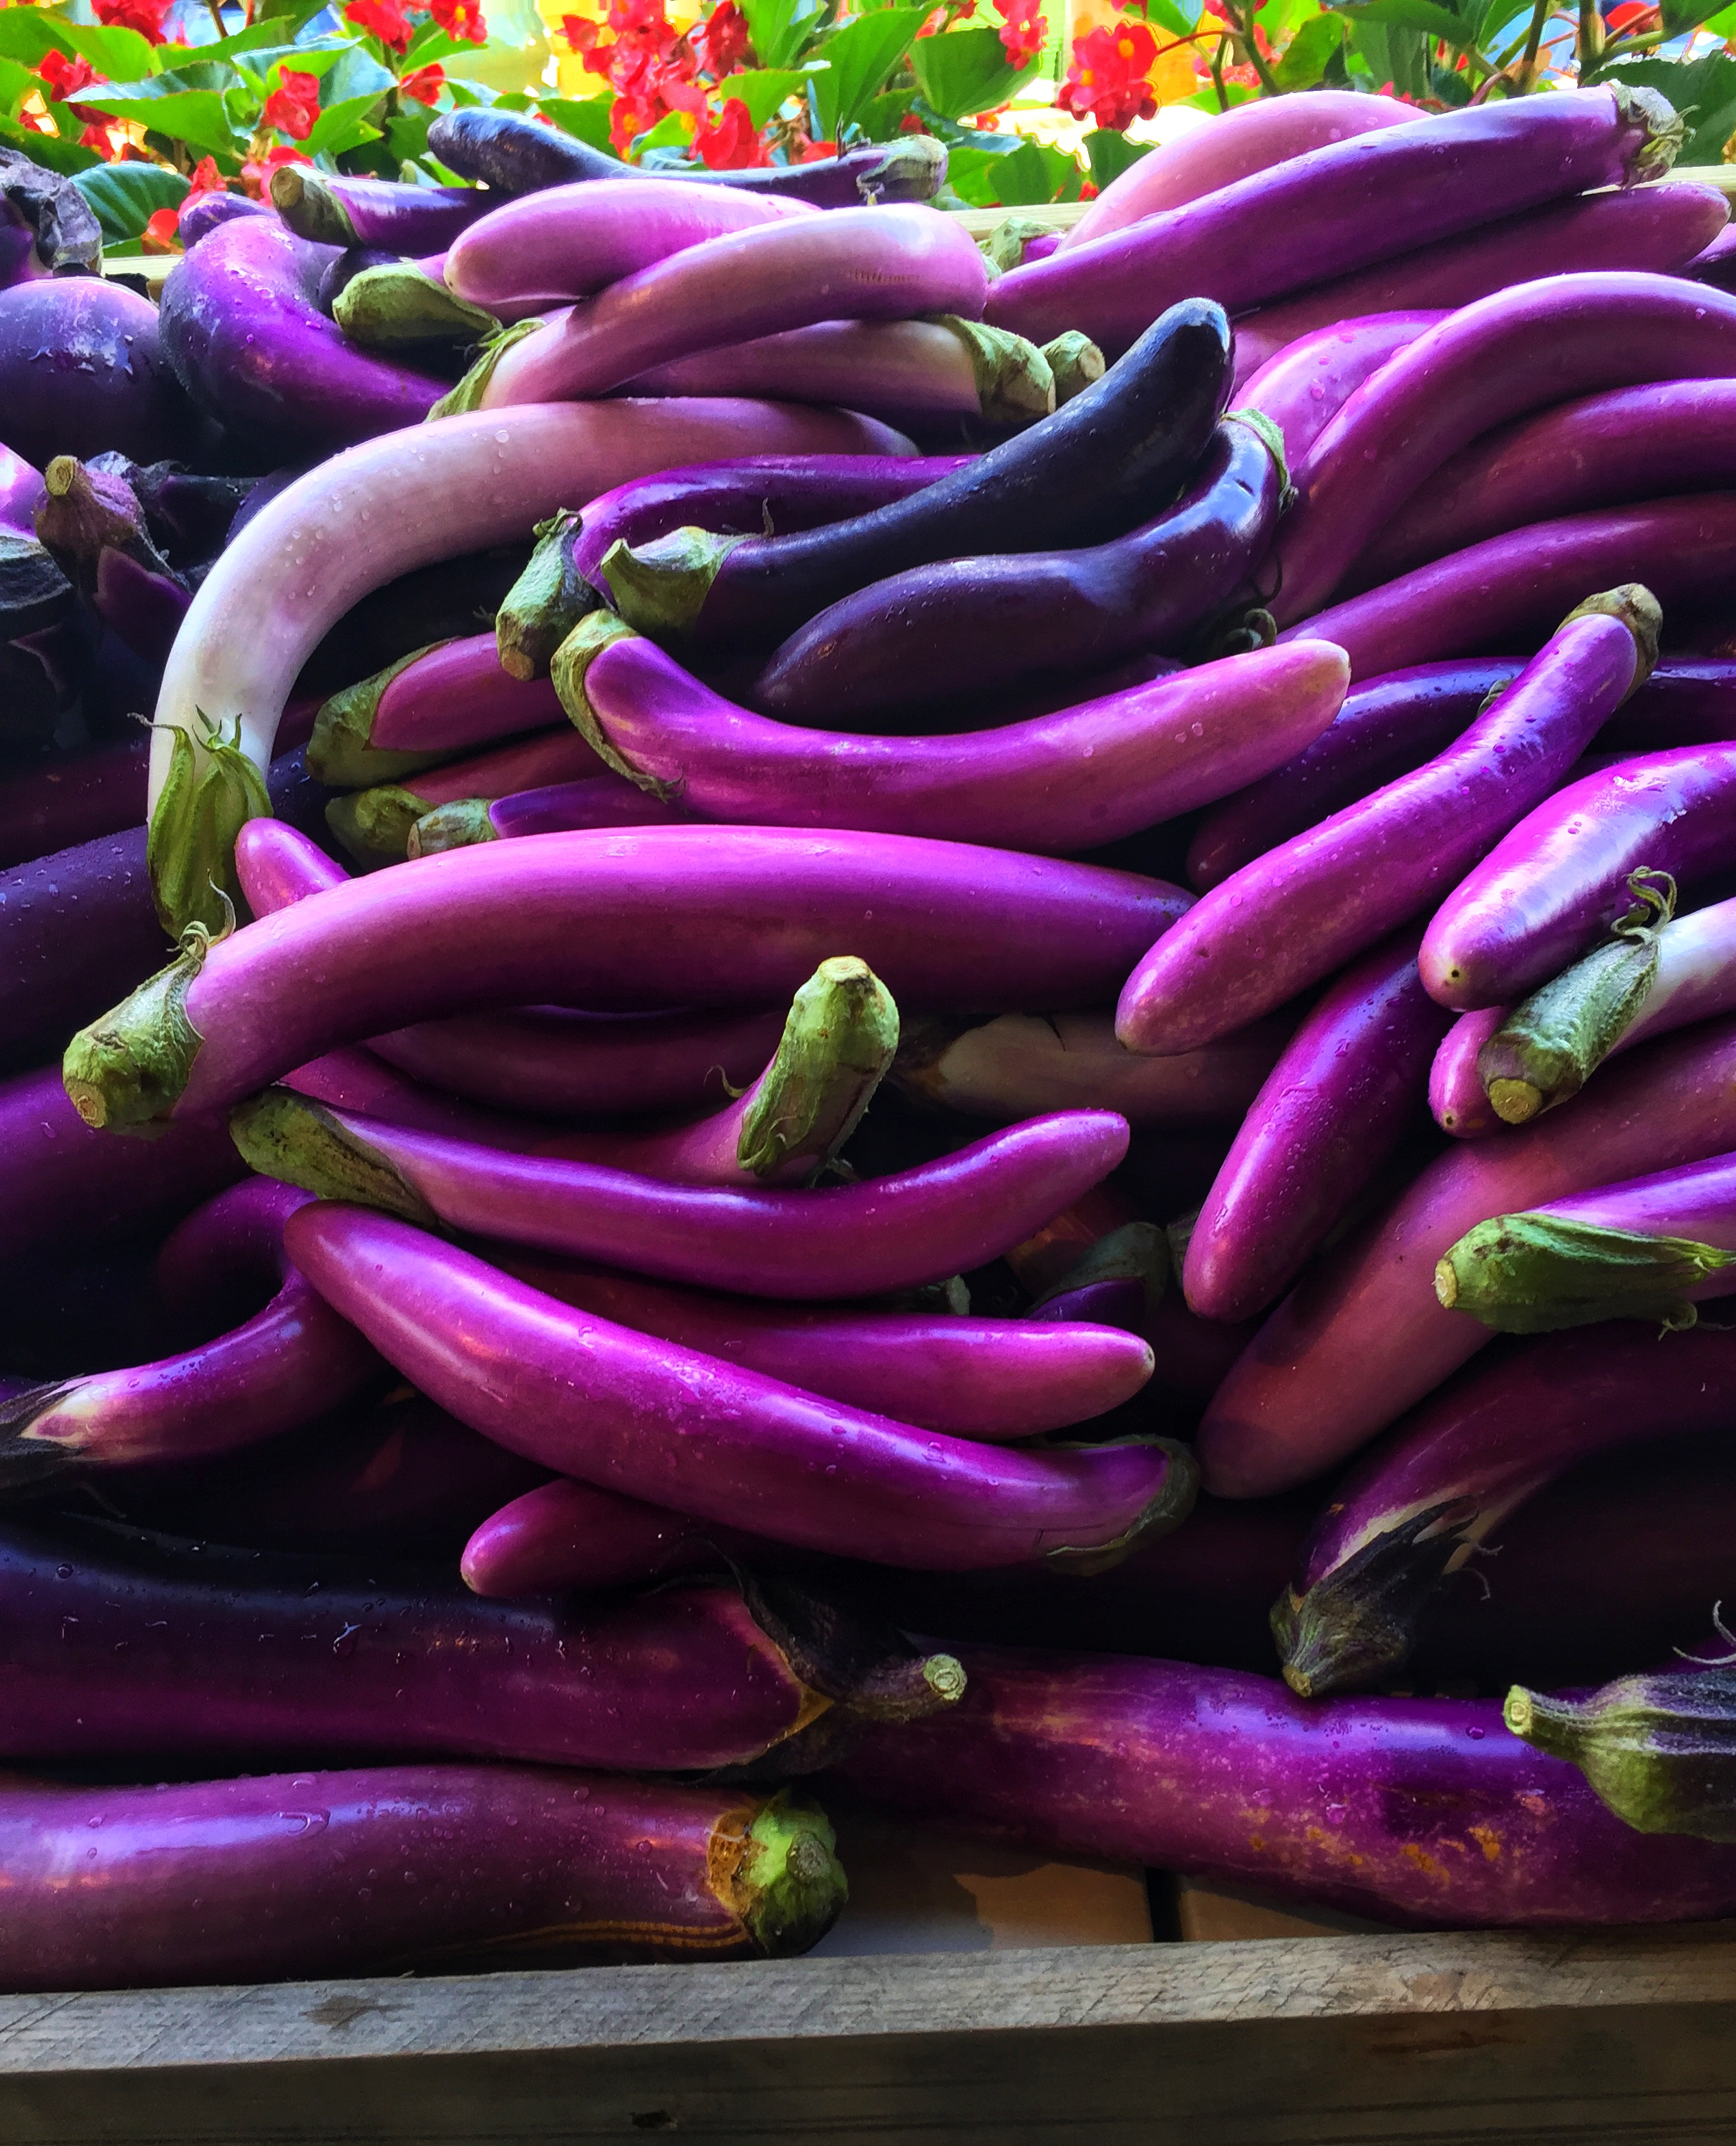 Locally grown eggplants at Russo's